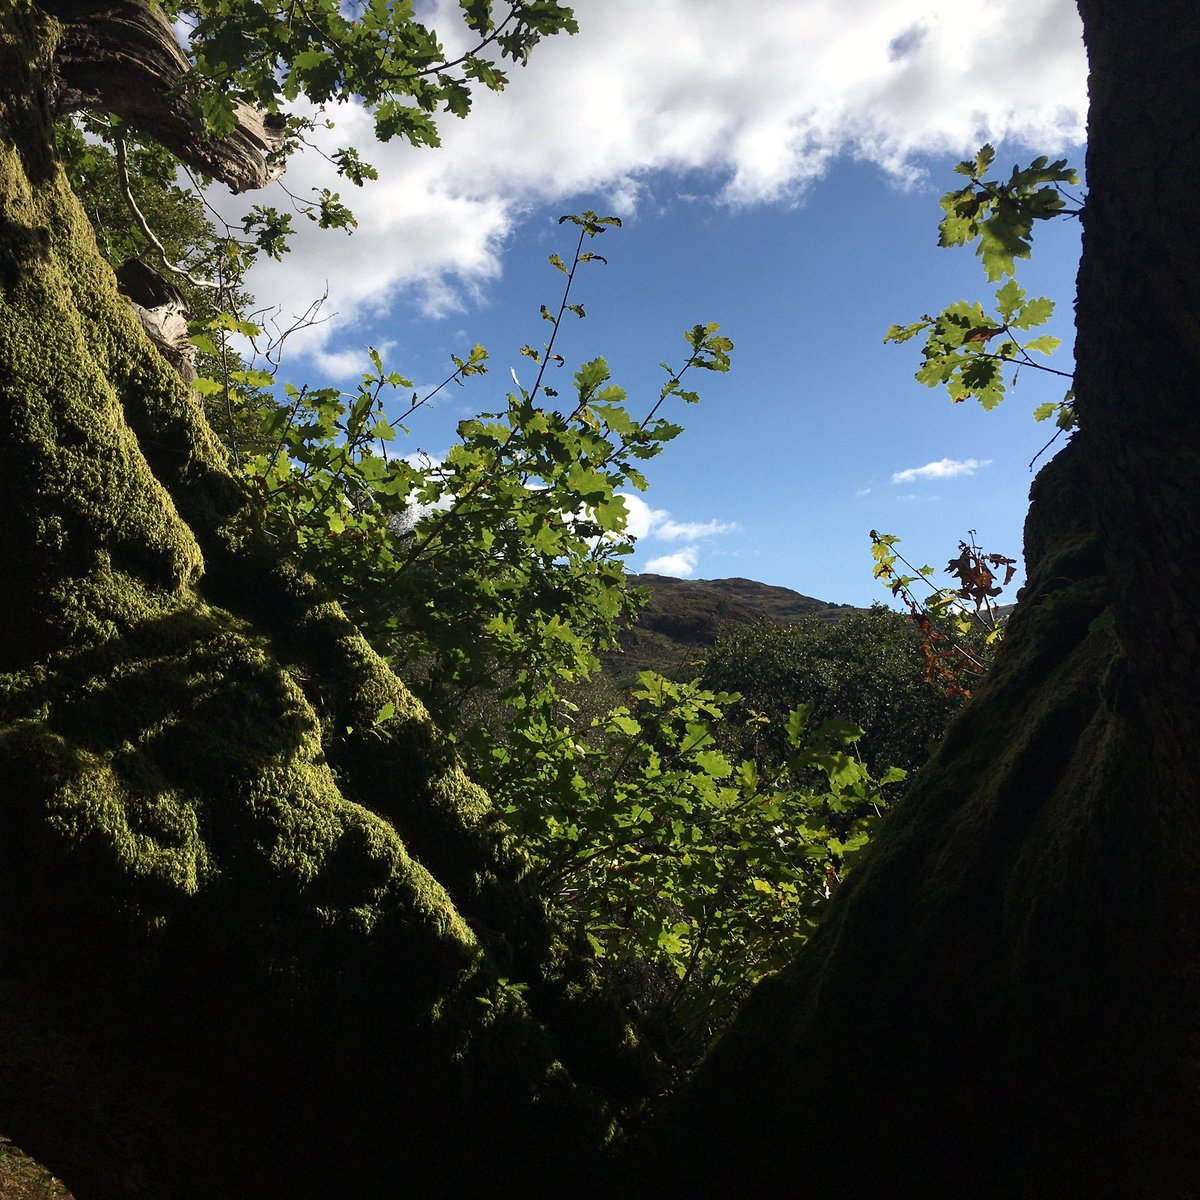 Trees - I love them - here's some great examples of them in Glen Trool #picoftheday #Scotland #bonnie #treehugger #sunnyday https://t.co/qdfvlJ95au